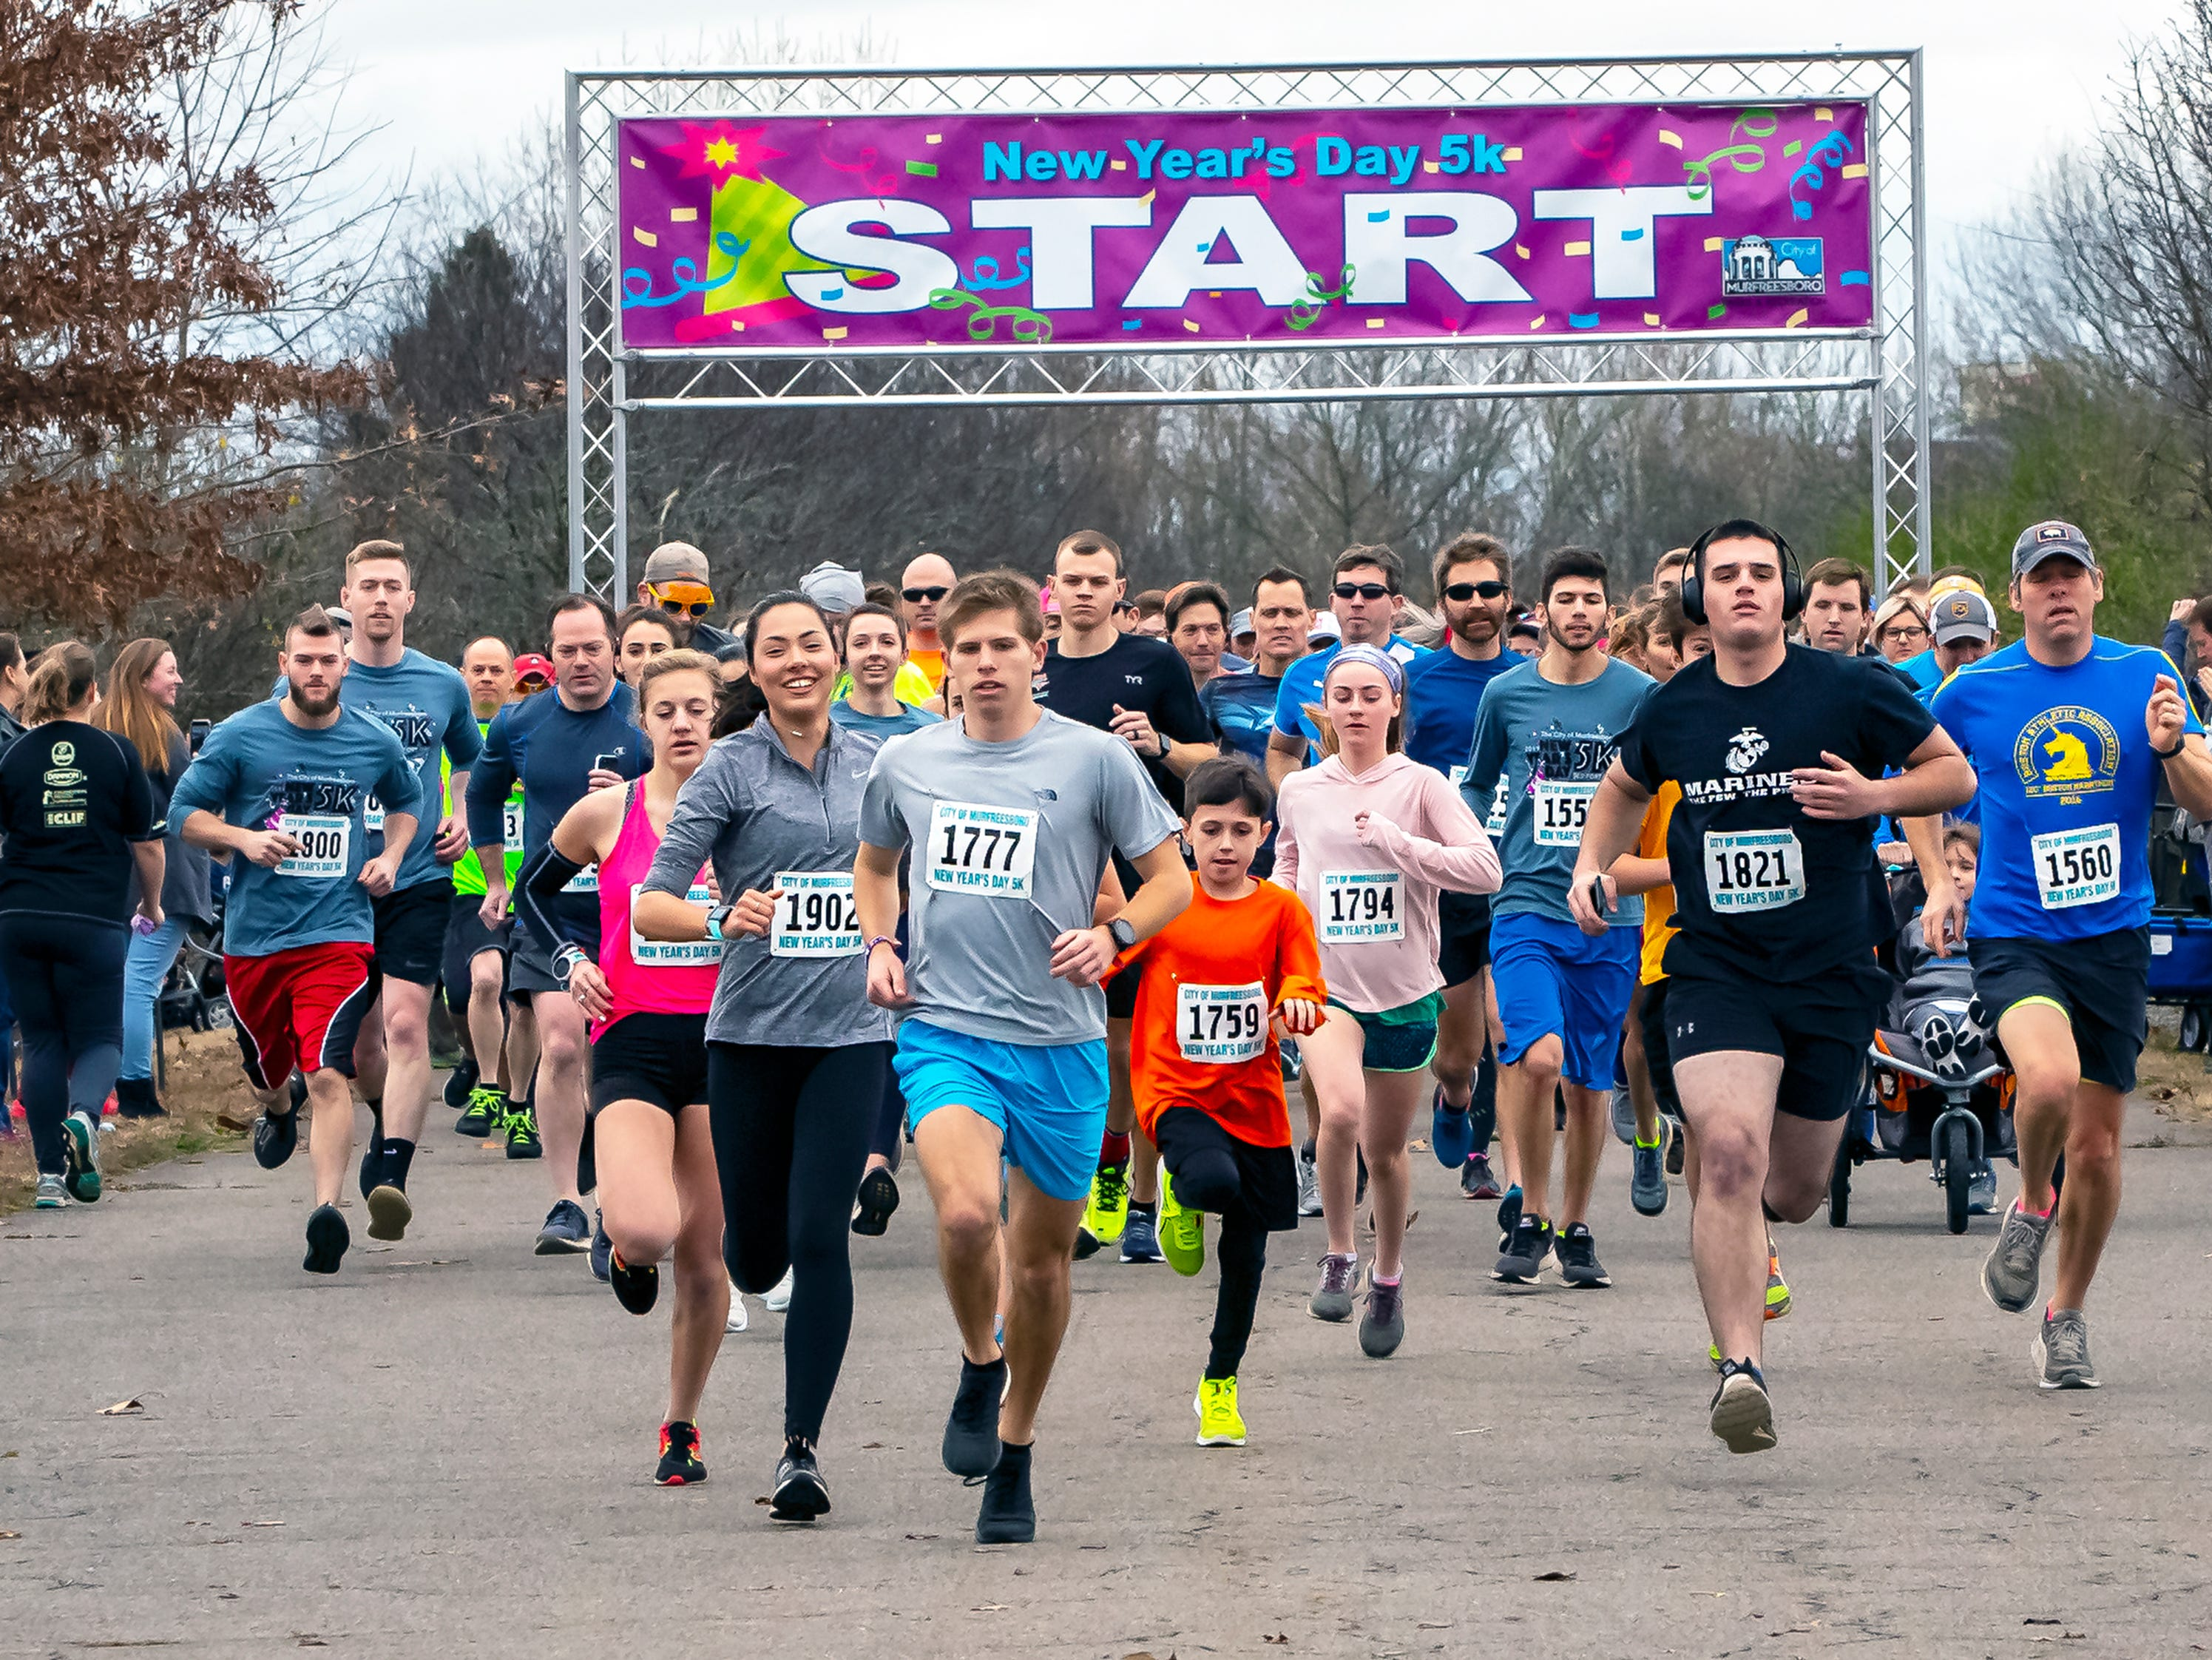 Daniel Smith (bib 1777) and eventual overall winner, leads the start of the 2019 New Year's Day 5K event held at Old Fort Park.